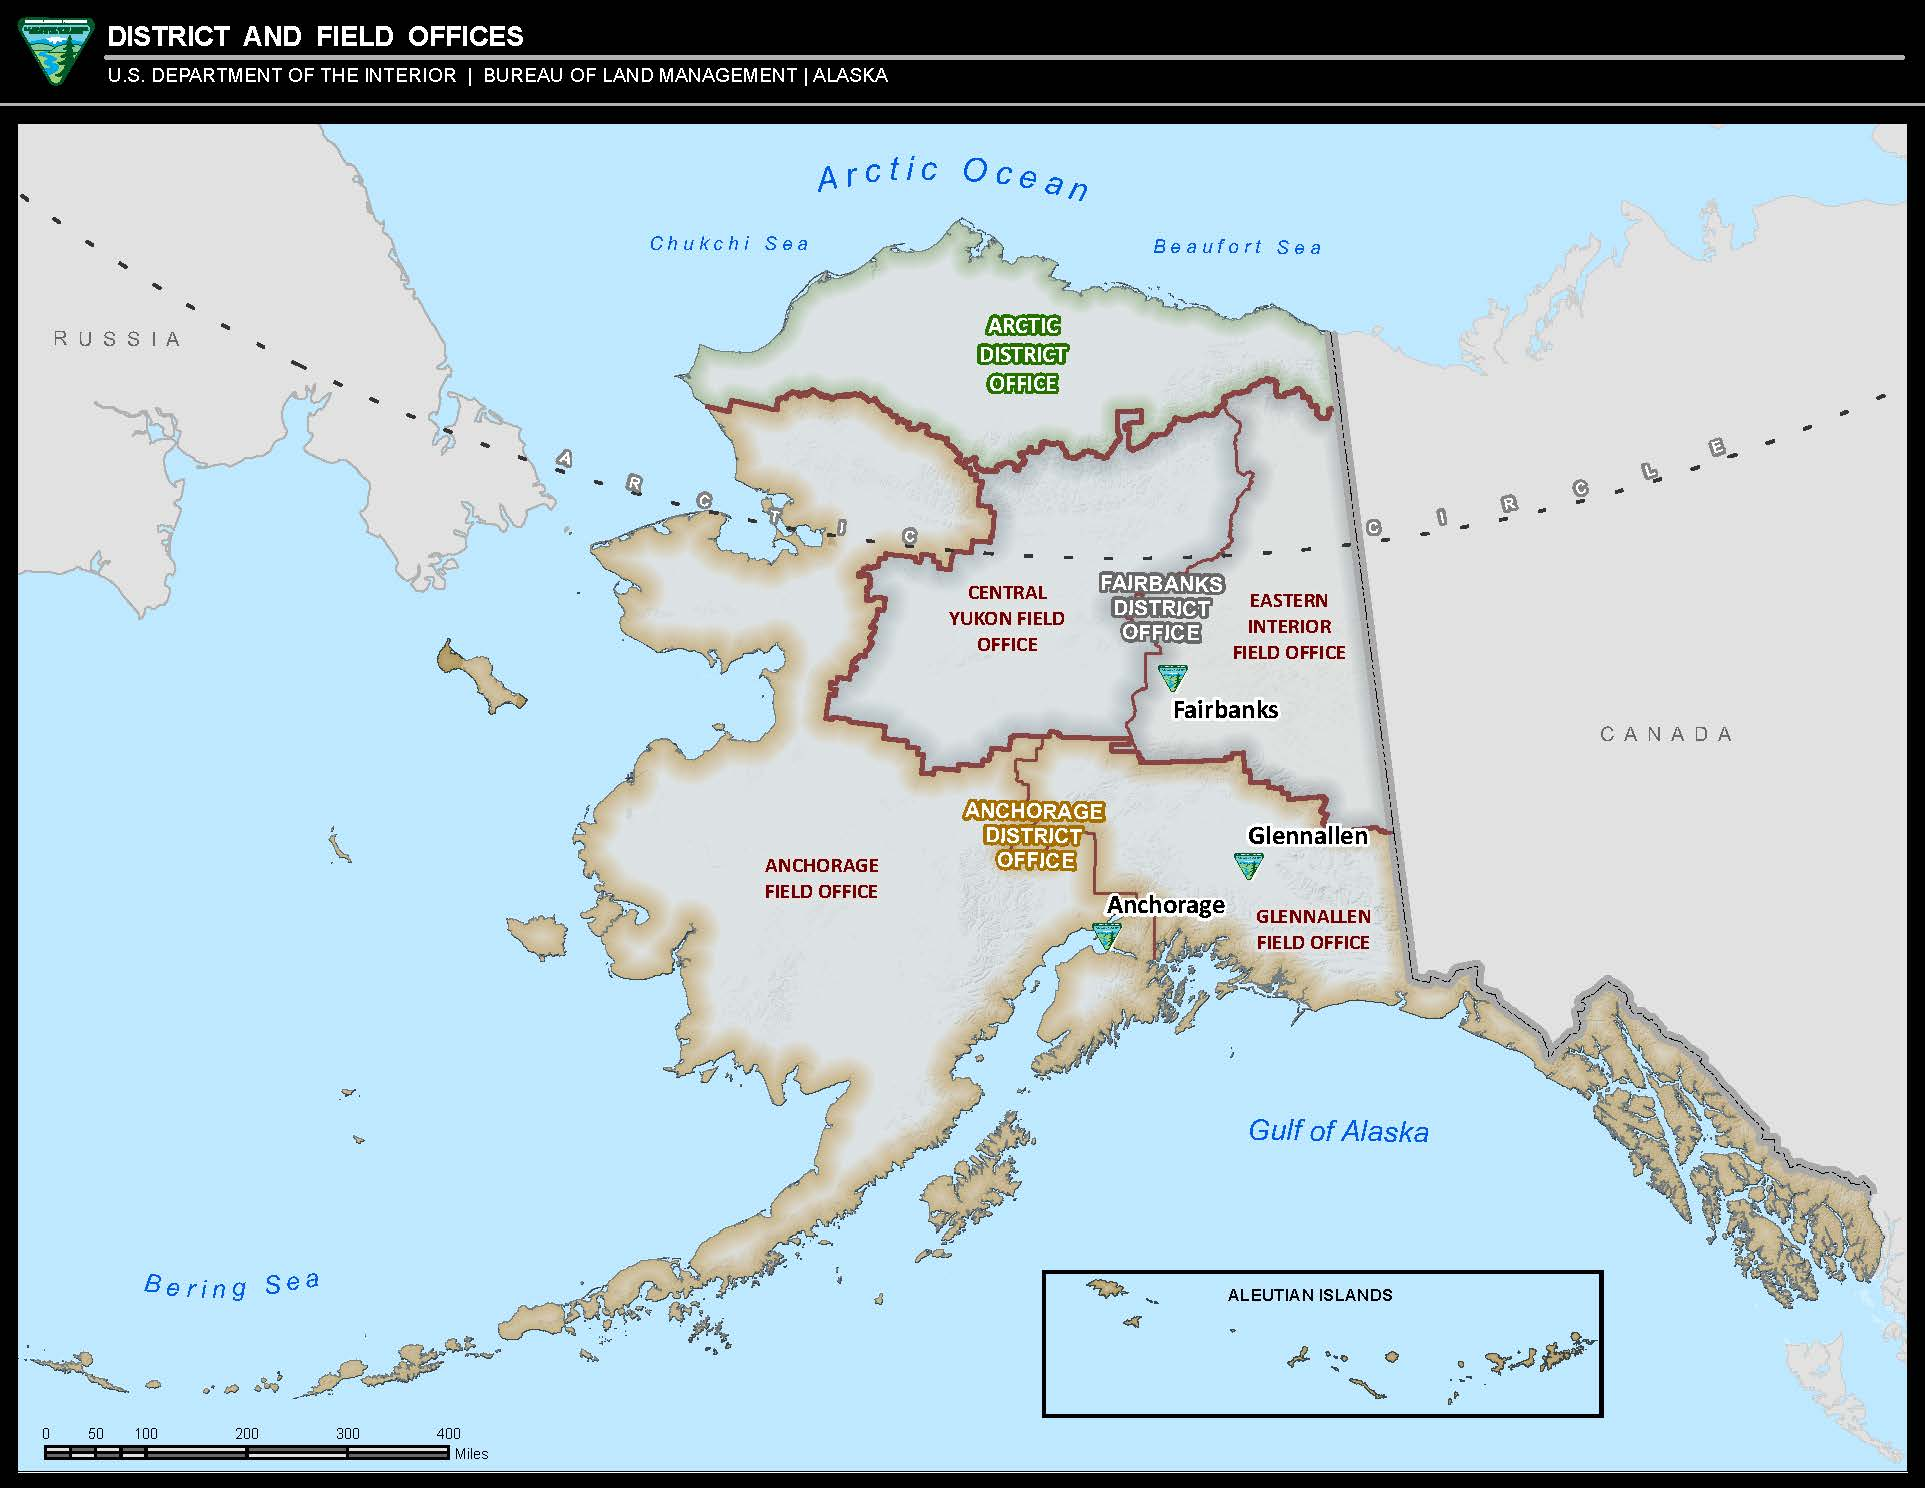 Maps: Alaska: State-wide Office Boundary Map | BUREAU OF LAND MANAGEMENT